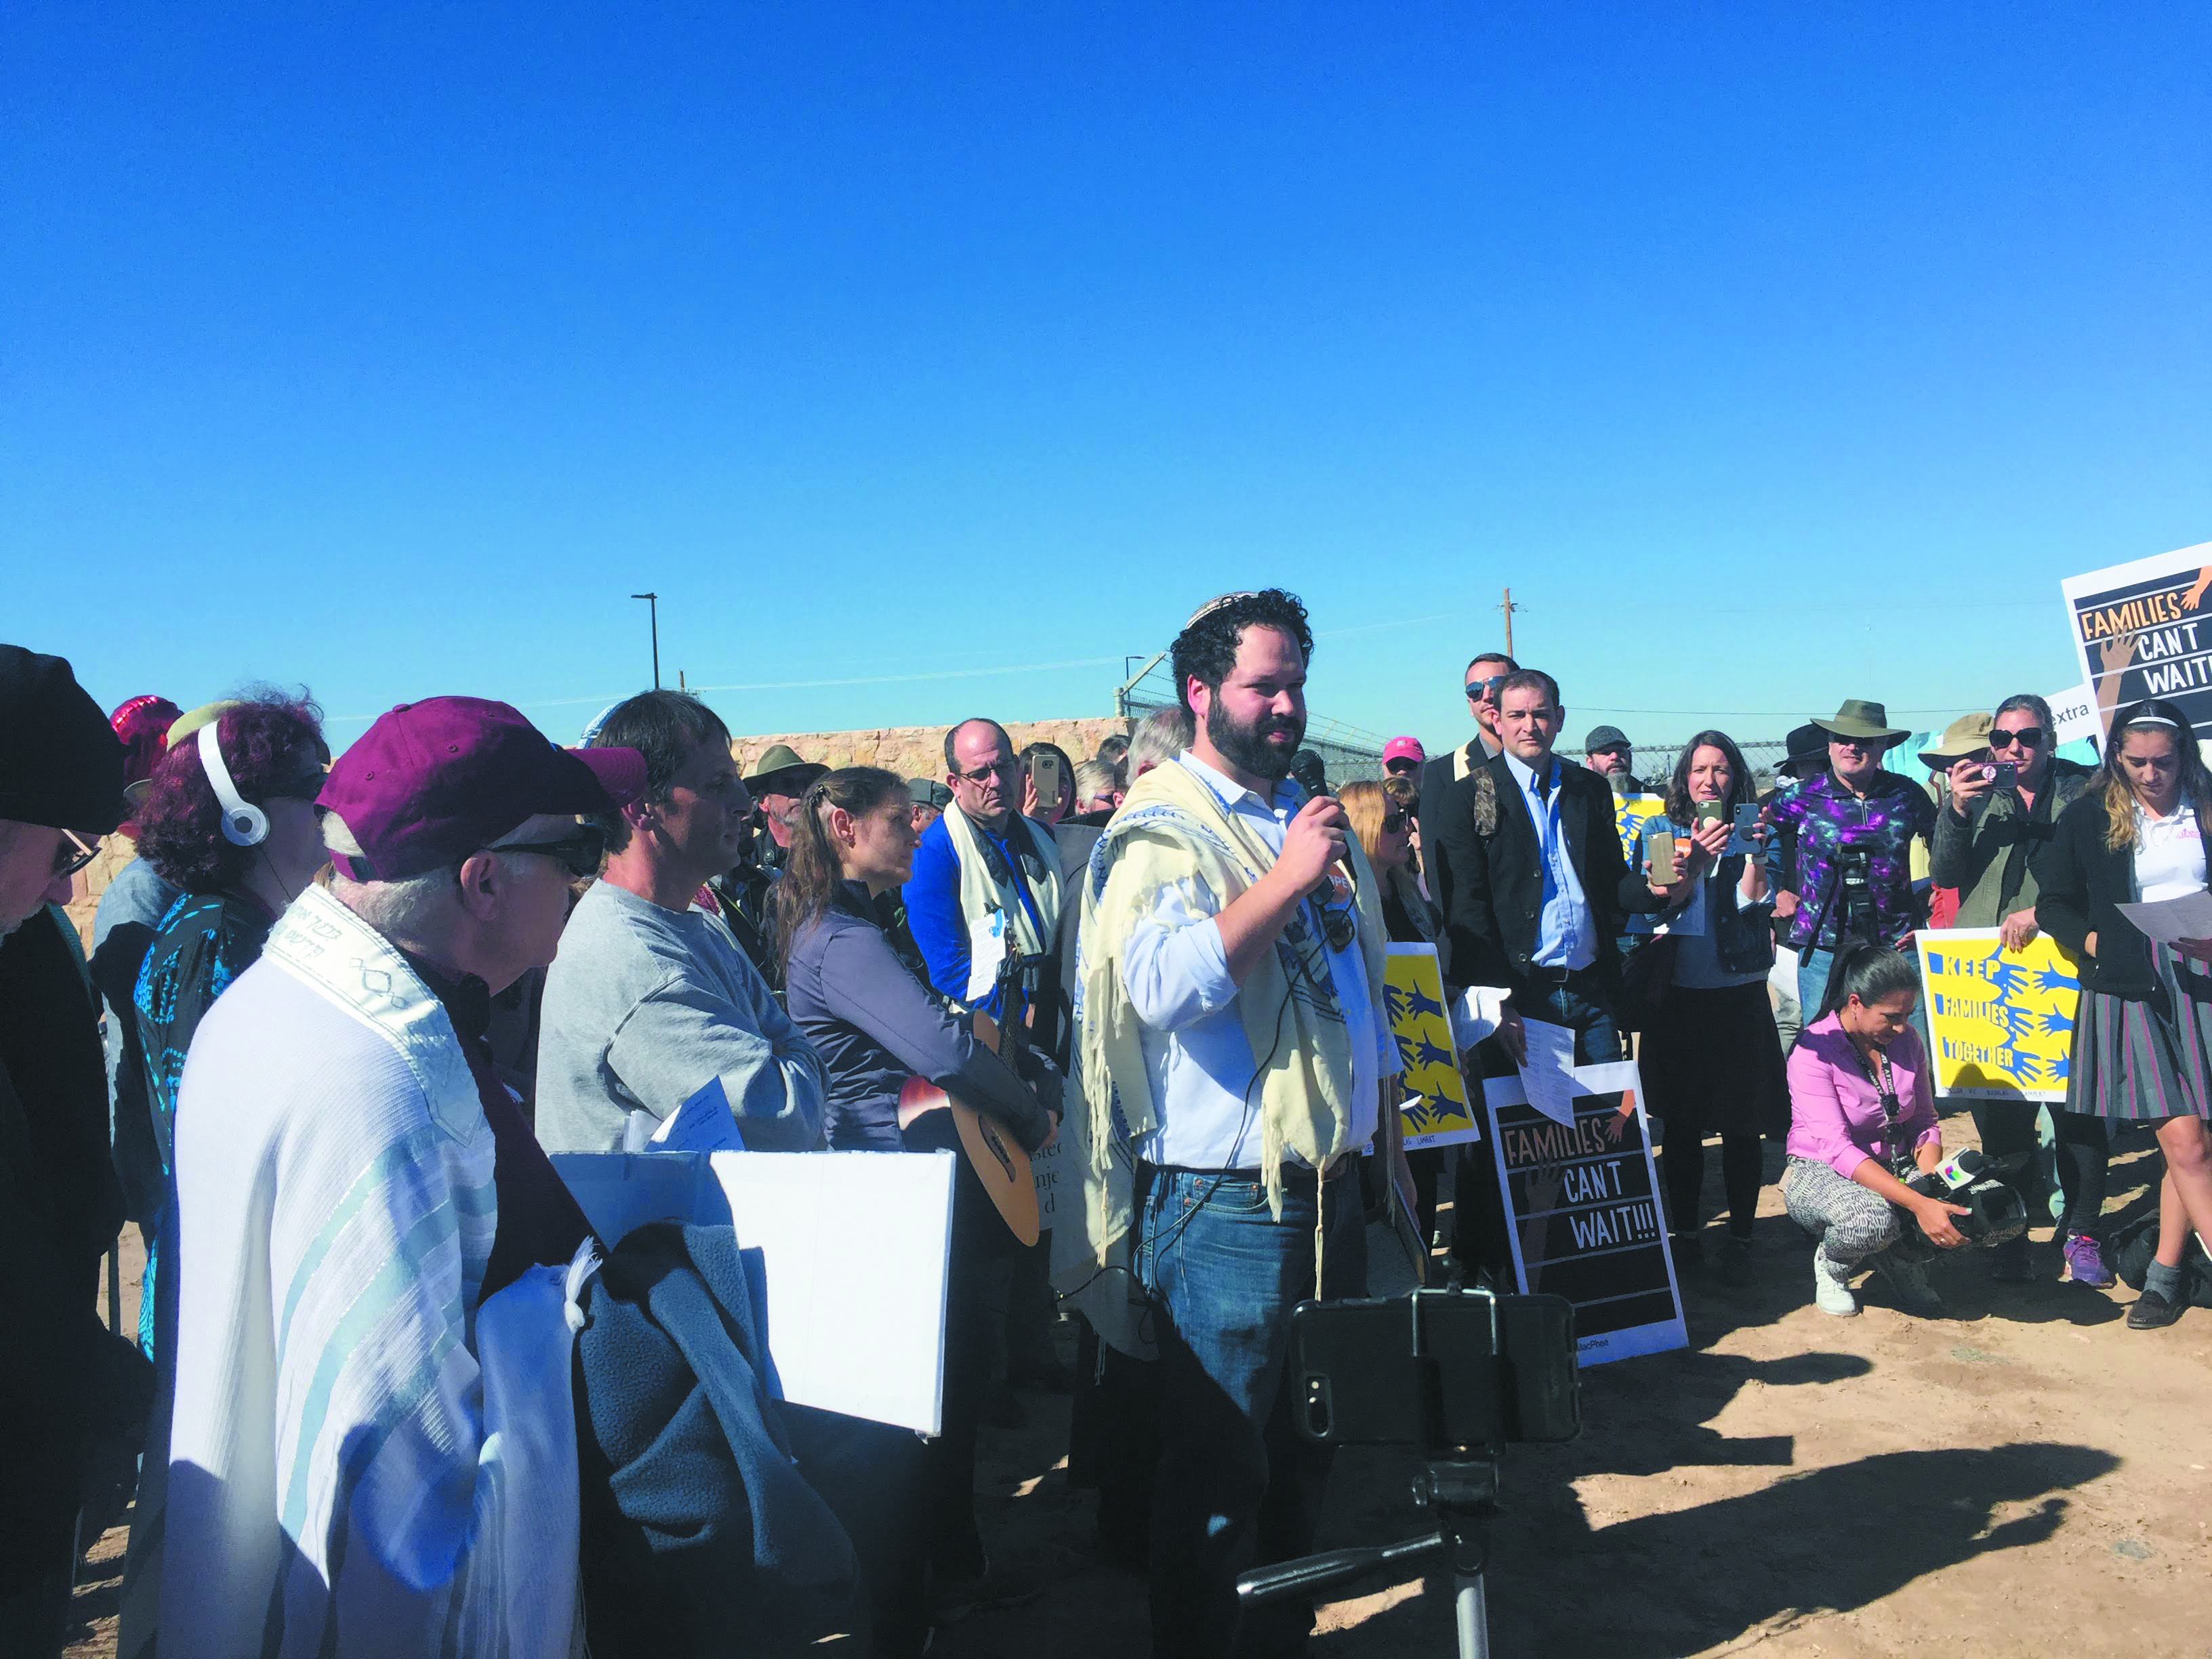 Rabbi Josh Whinston of Temple Beth Emeth in Ann Arbor speaks to a multi-faith group protesting outside the Tornillo, Texas, detention center. He is in the center standing in a tallit and kippah while people with signs stand around him and watch and listen.